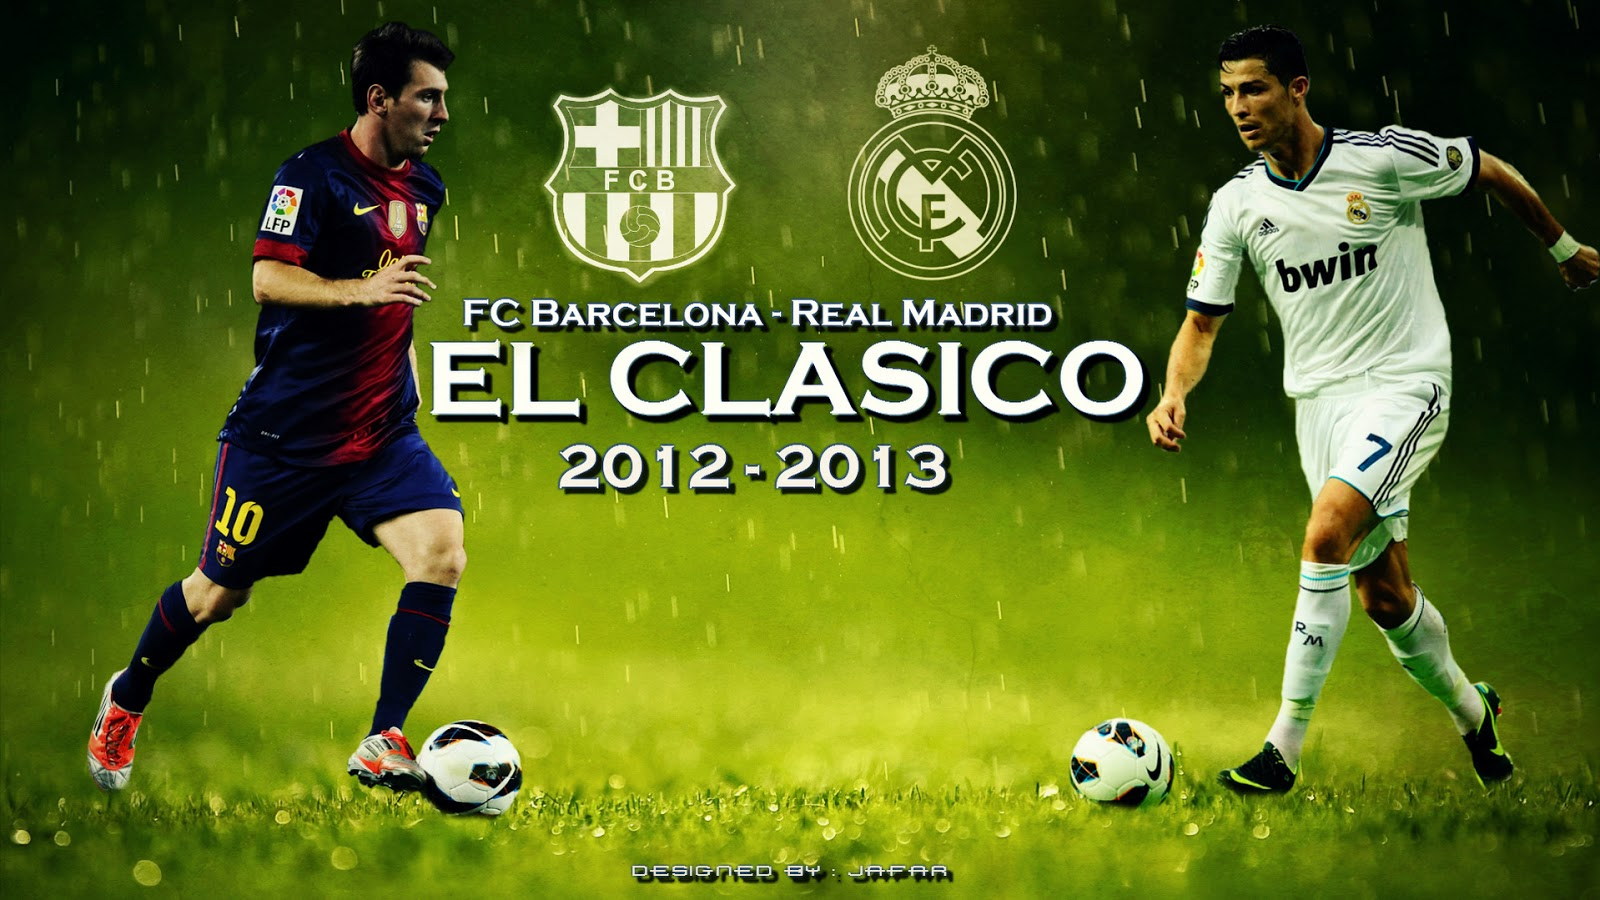 2013 Barcelona FC Vs Real Madrid  Lionel Messi Vs Cristiano Ronaldo